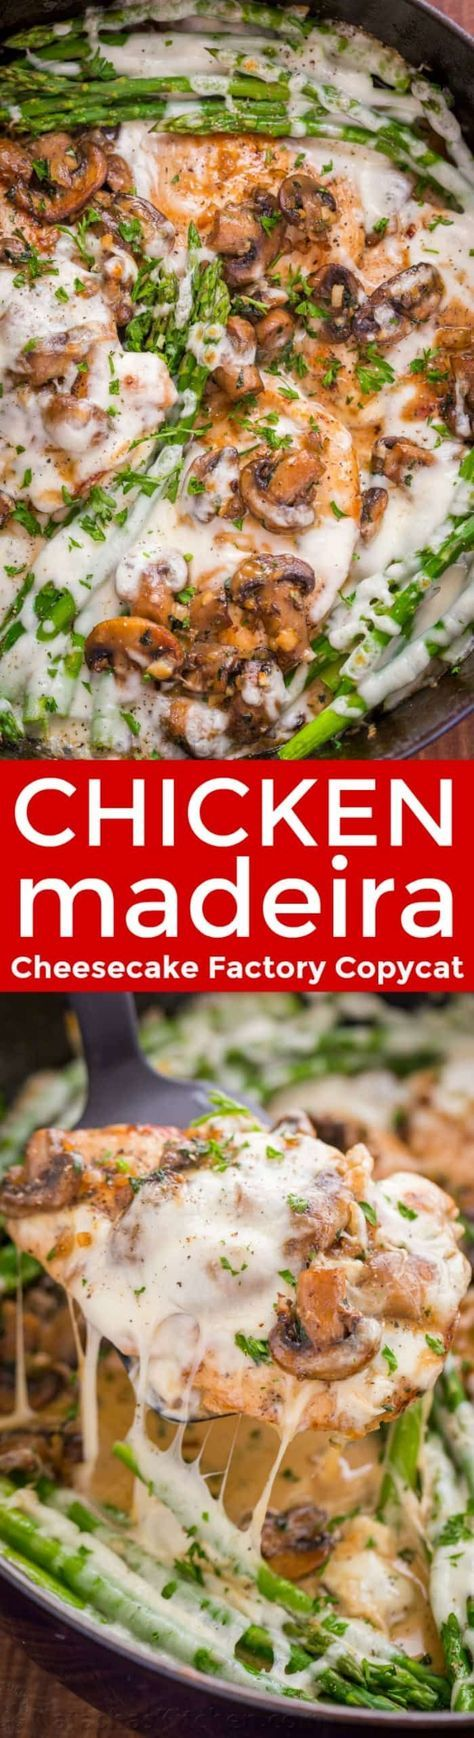 Chicken Madeira With Juicy Chicken And Mushrooms In A Creamy Sauce With Melty Cheese Creamy Chicken Madeira Is A Che Chicken Recipes Recipes Chicken Madeira